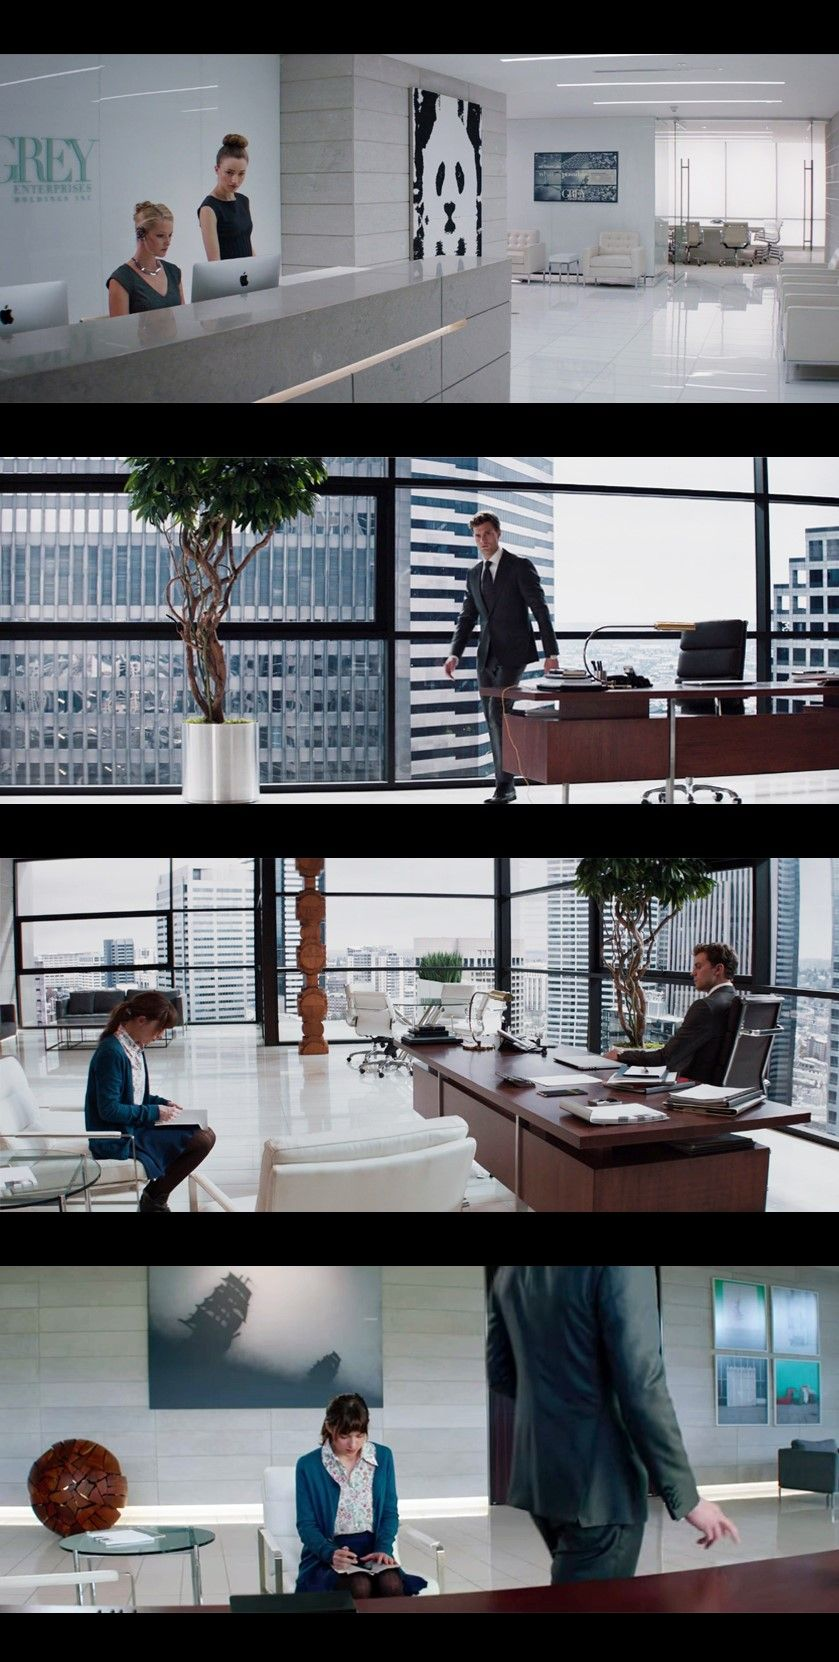 Christian Grey S Office In Fifty Shades Of Grey Film In 2019